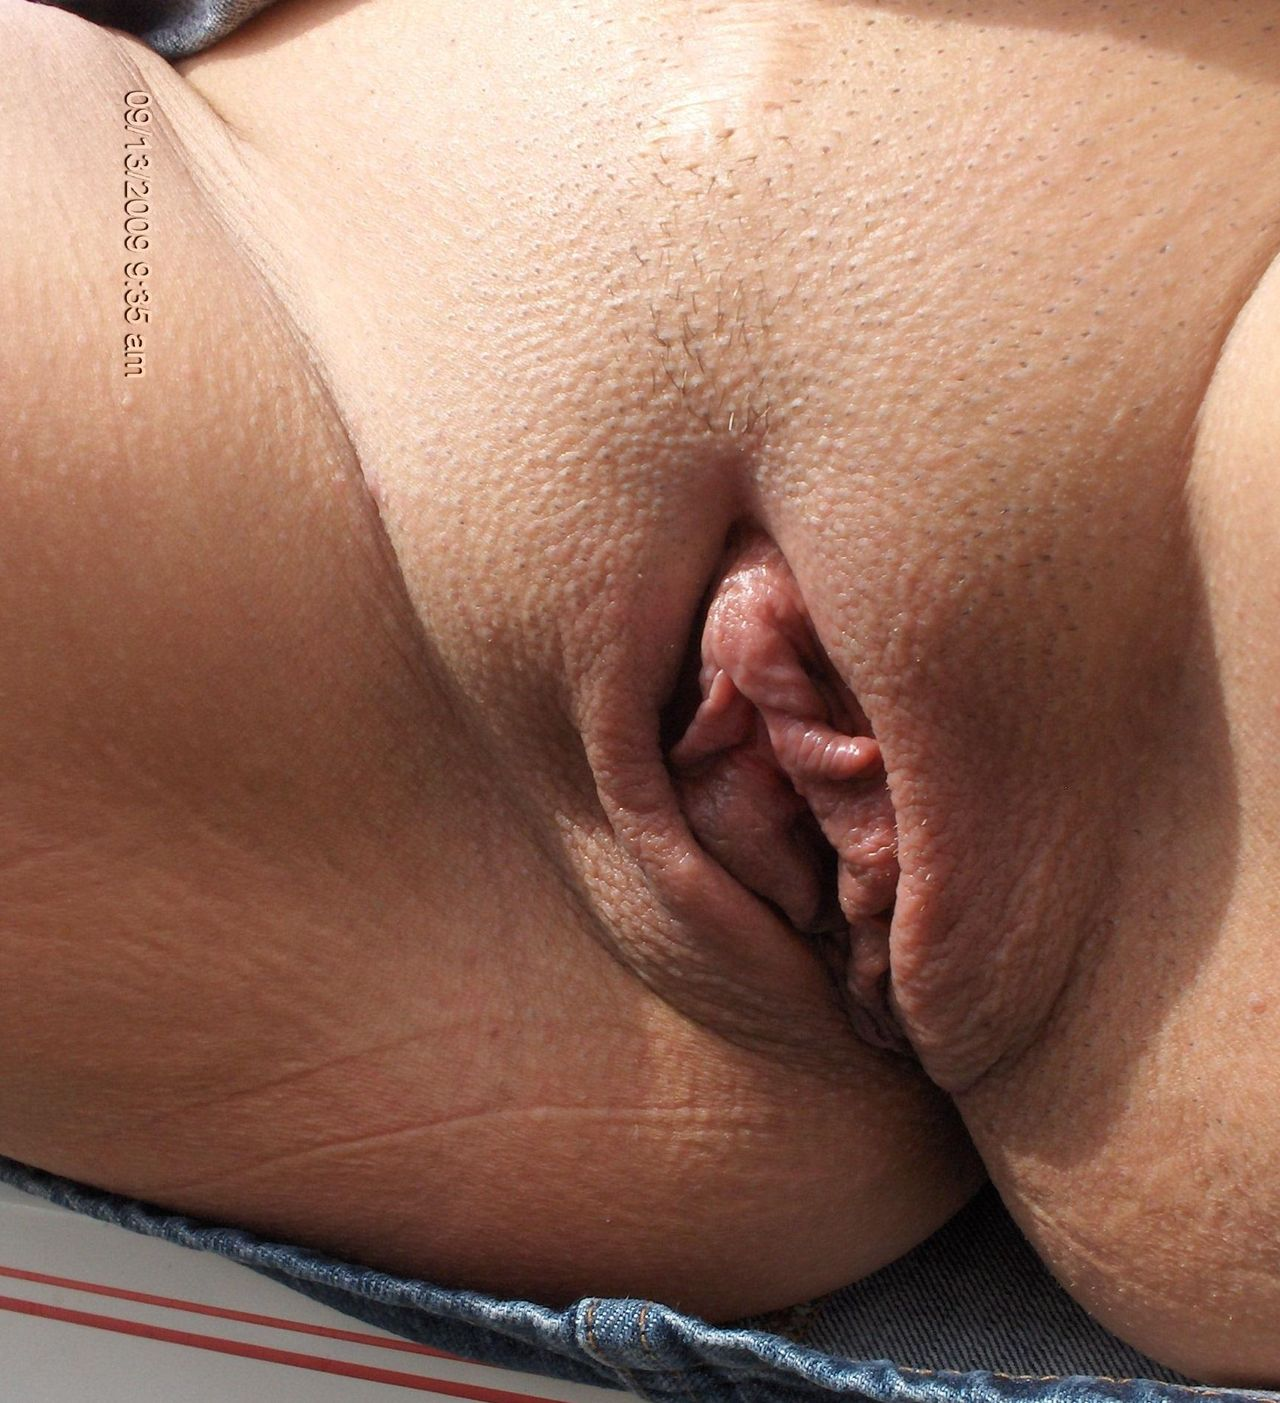 Puffy Pussy Tumblr Com Classy shaved puffy pussy - sexpics.download - erotic and porn images